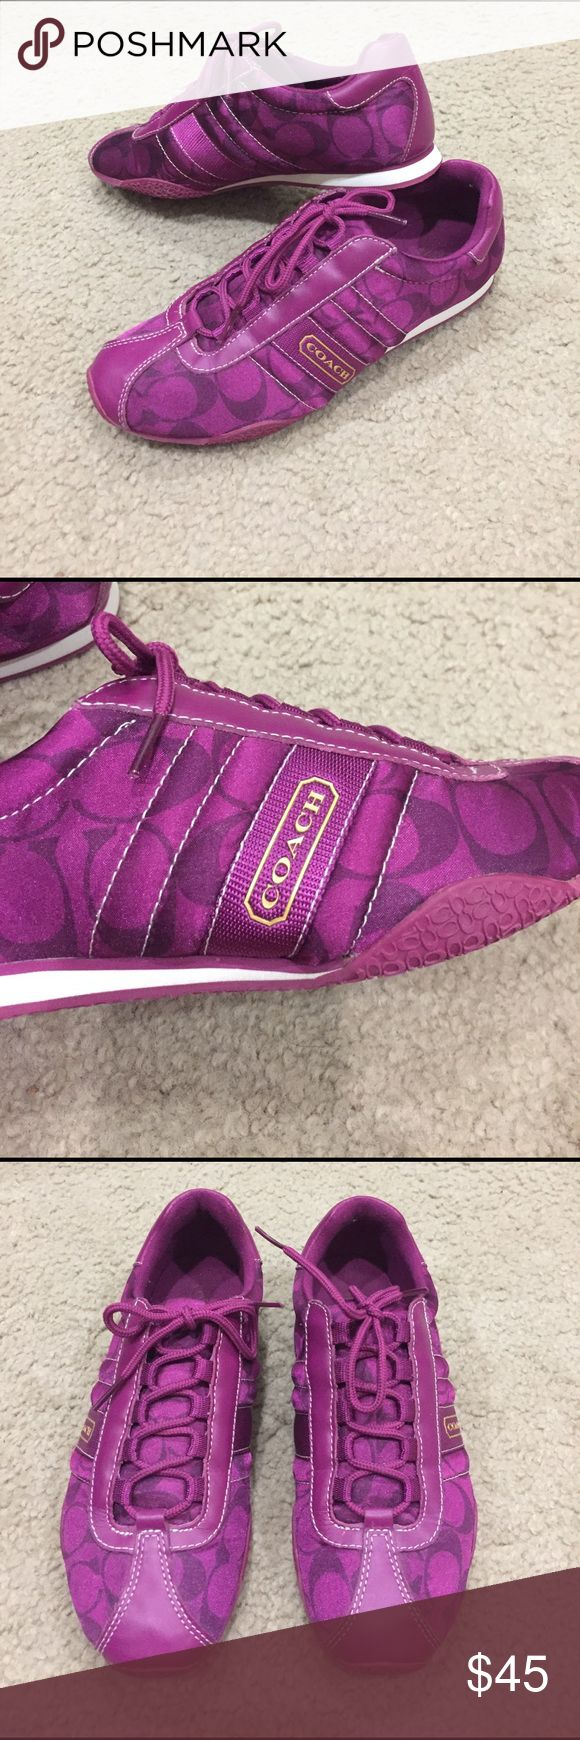 Coach Kirby magenta sateen tennis shoes! Coach Kirby magenta sateen tennis shoes! These are preloved in excellent condition. They are a pink/purple. Absolutely stunning!  Coach Shoes Sneakers